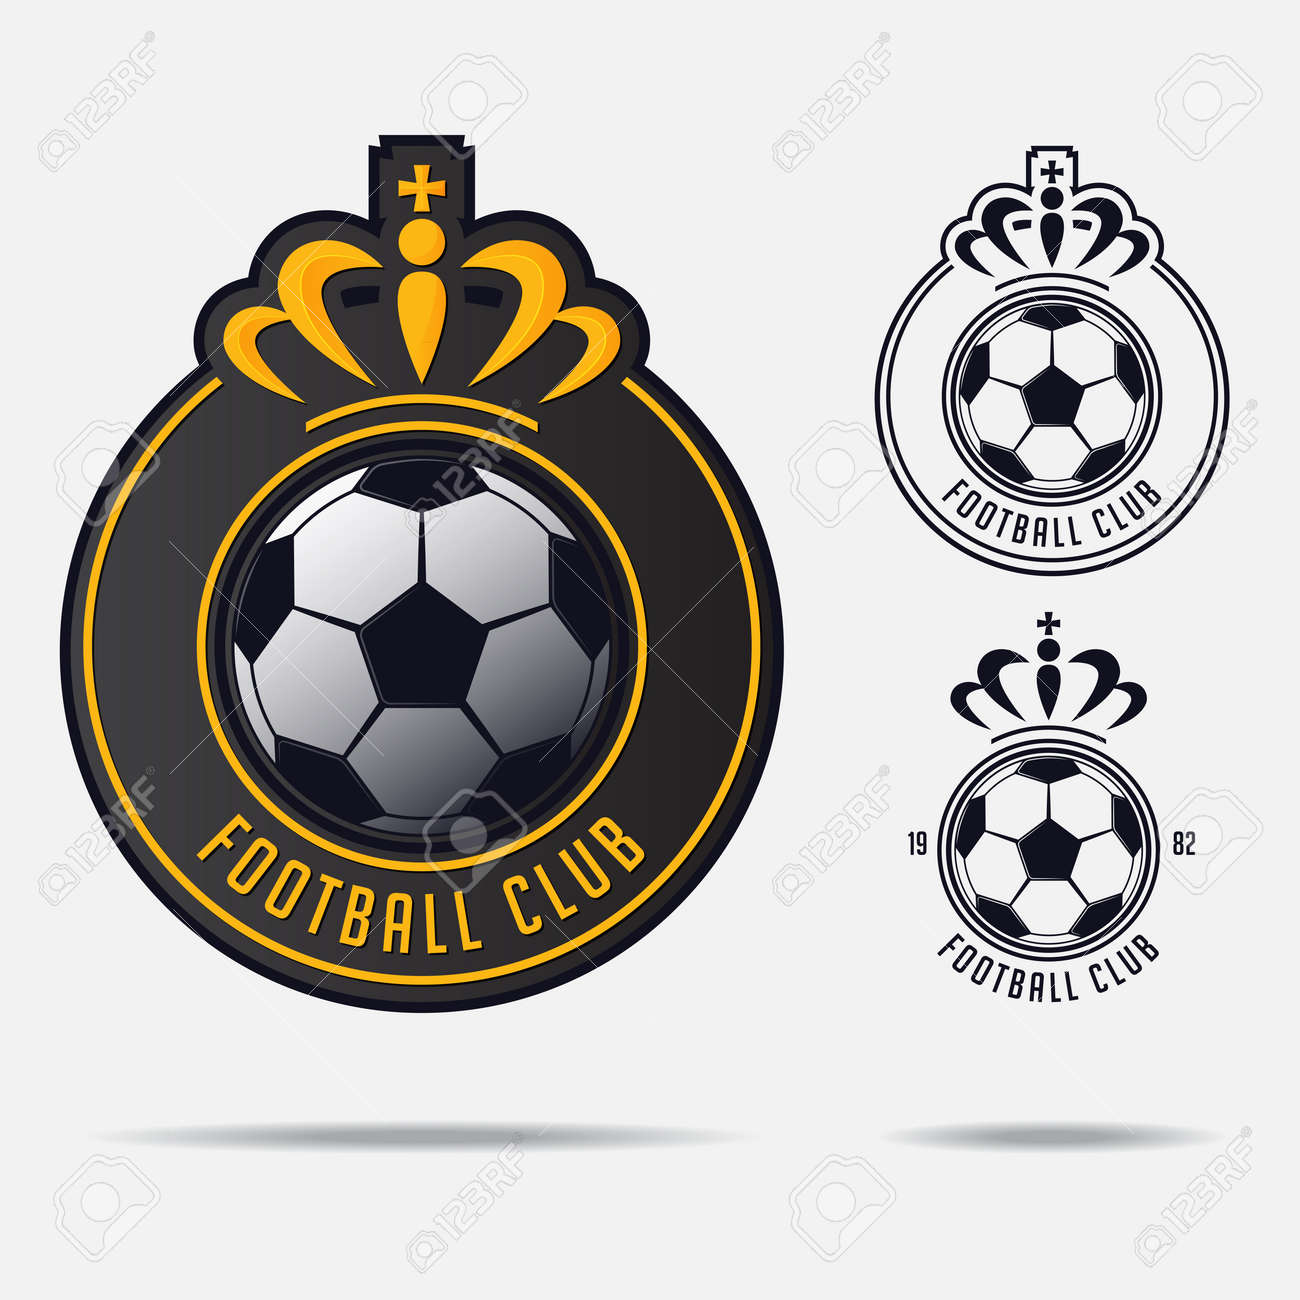 Soccer emblem or Football Badge Logo Design for football team. Minimal design of golden crown and classic soccer ball. Football club logo in black and white icon. Vector Illustration. - 87431230